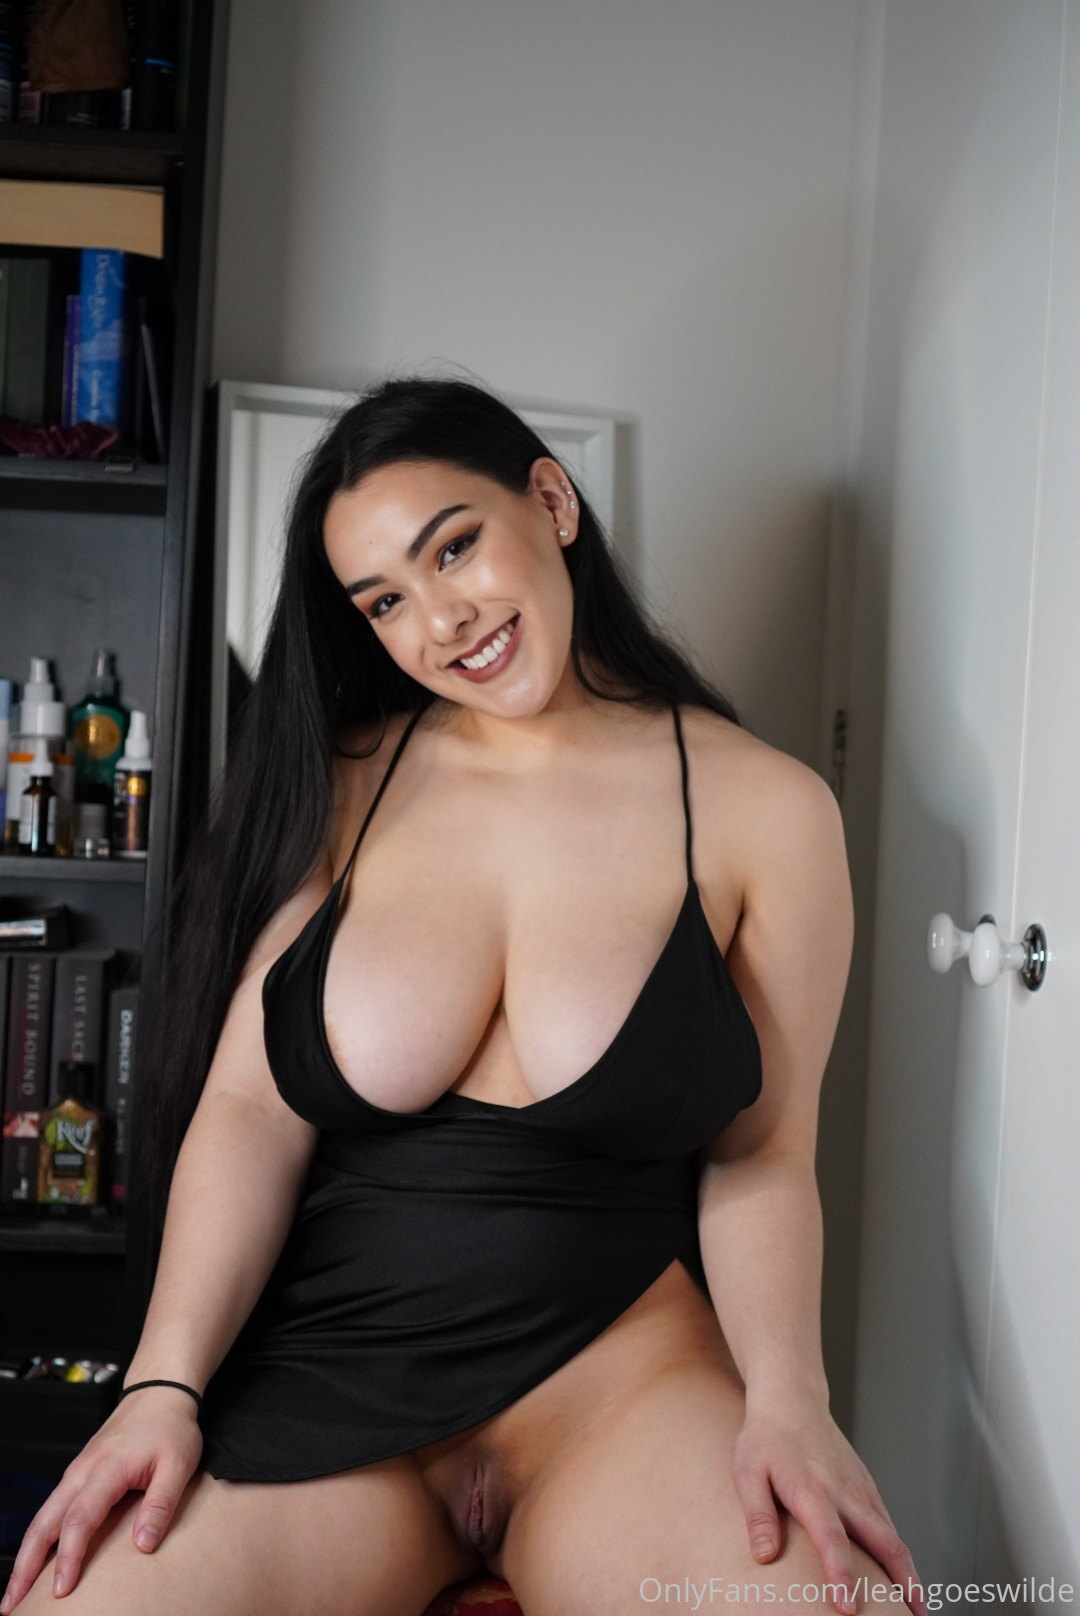 Leahgoeswild Porn OnlyFans Leaked Nudes 49